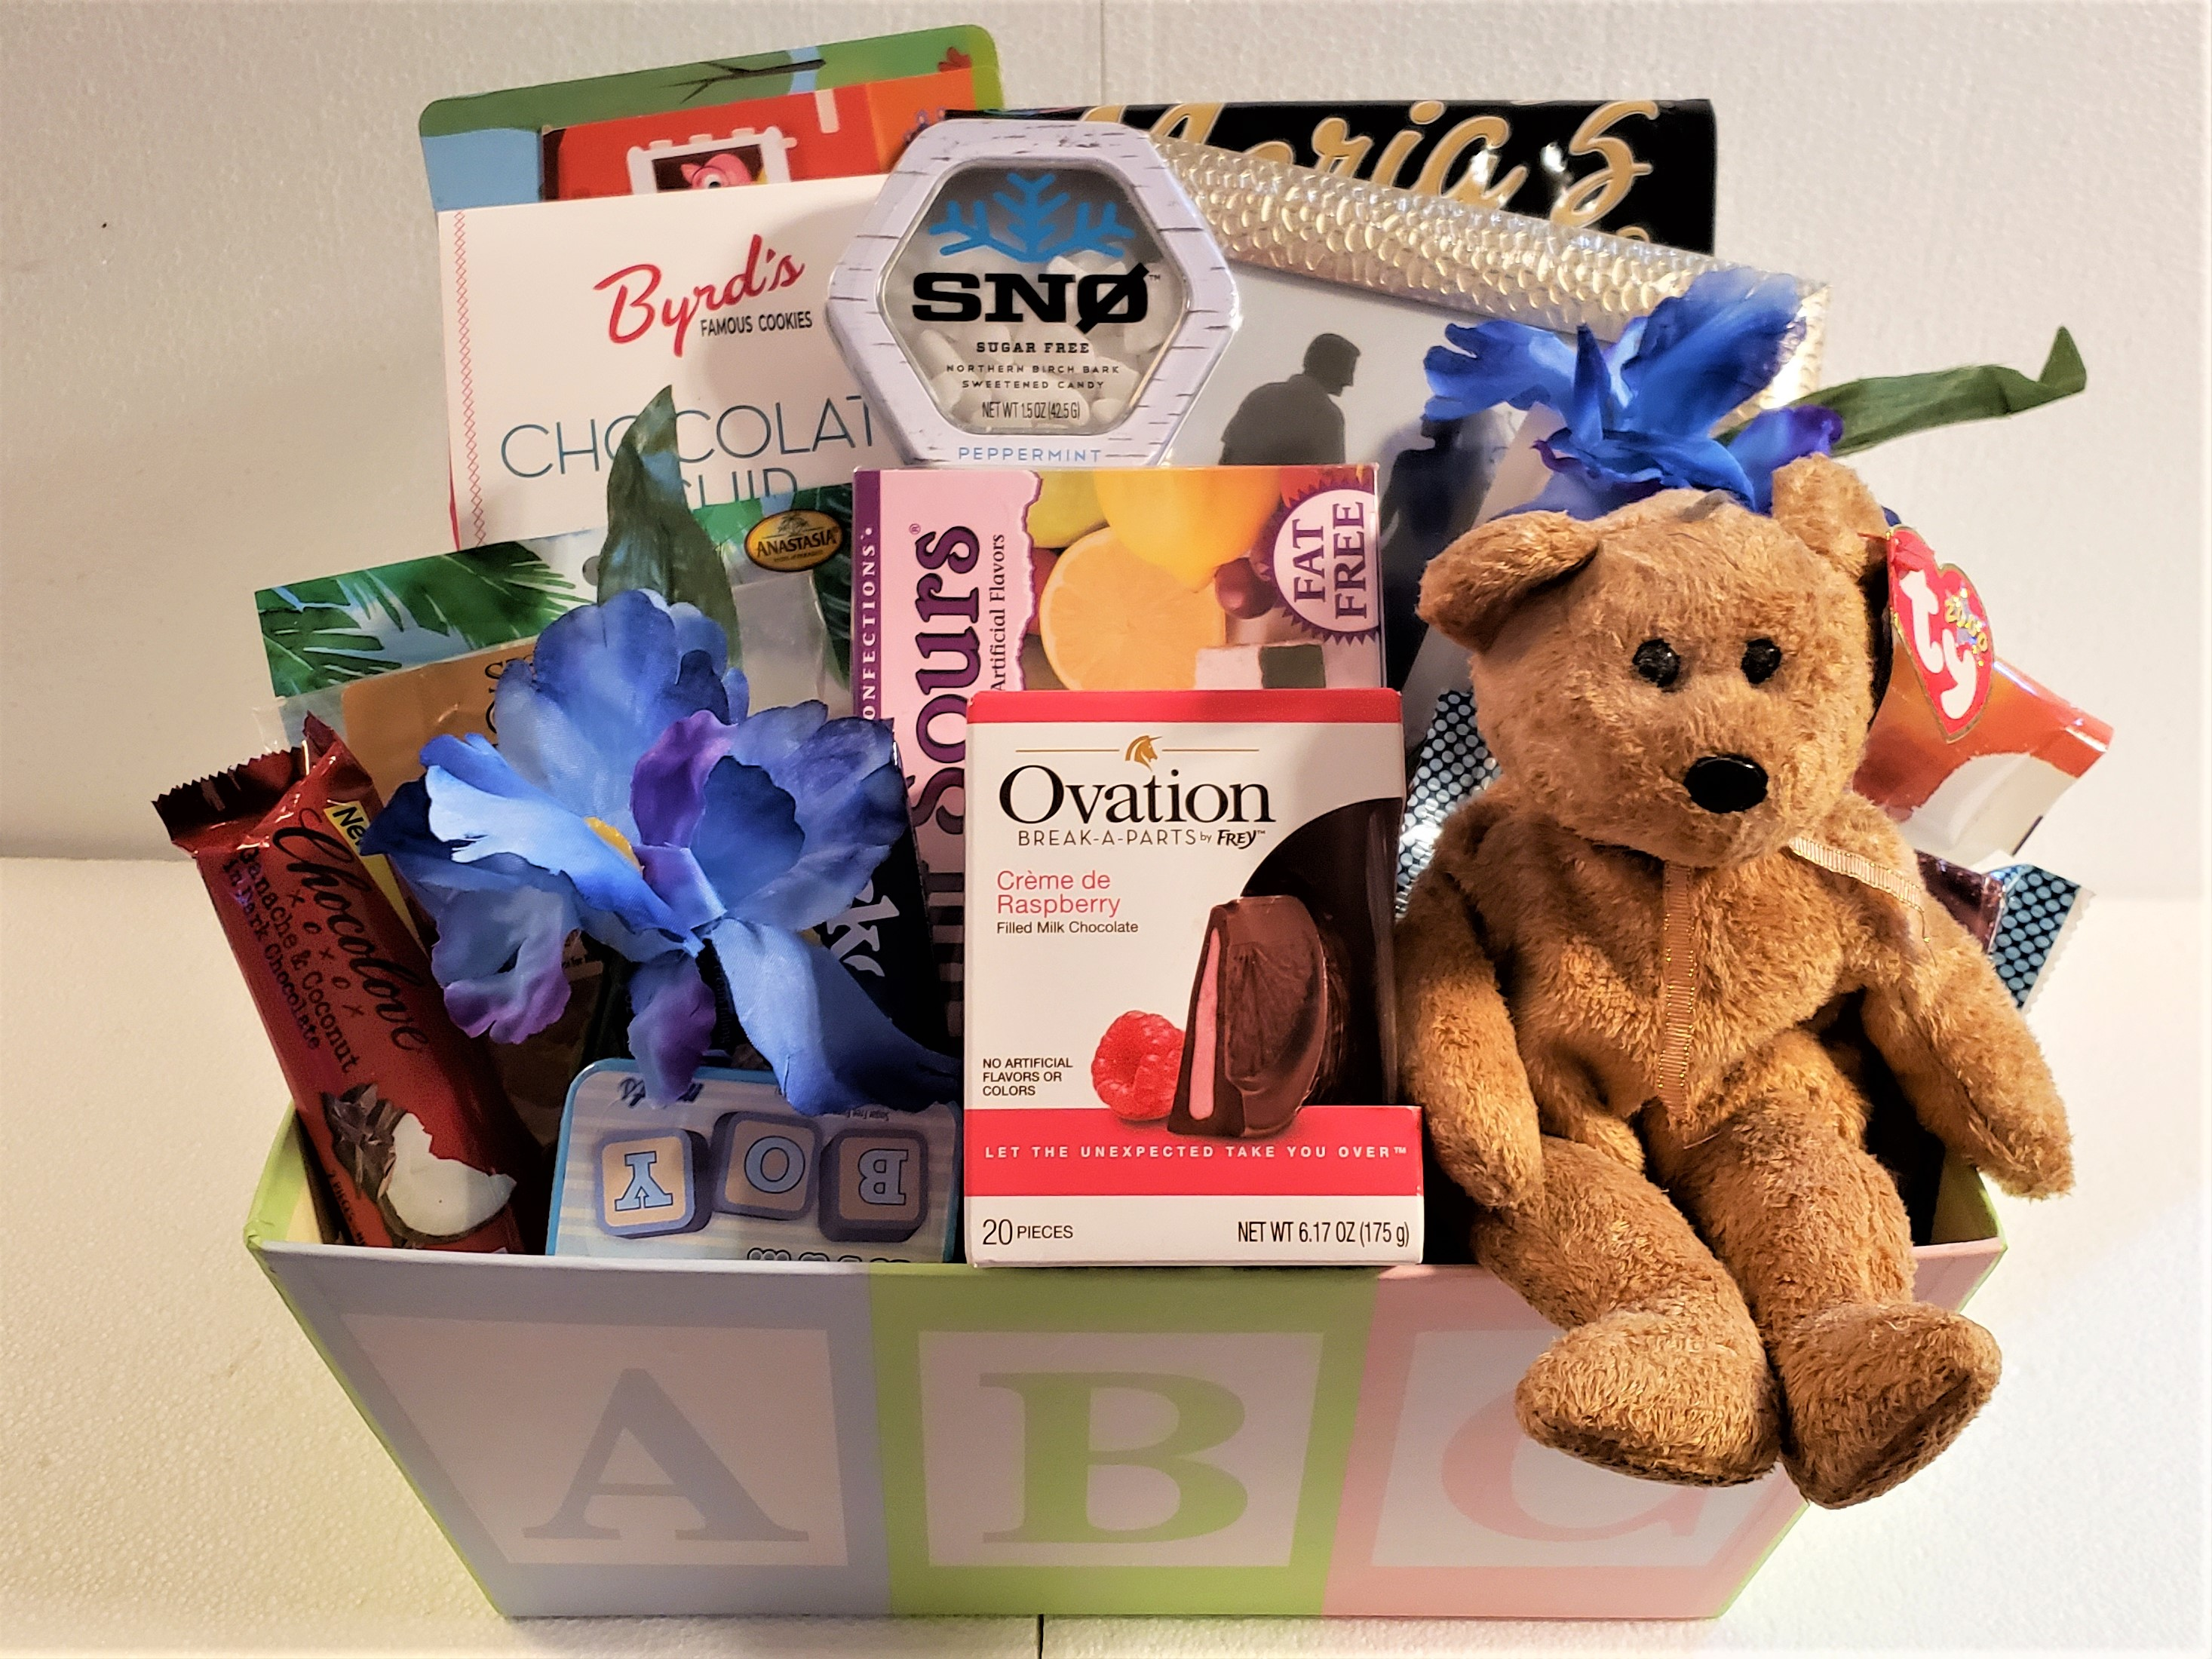 kosher gift baskets and gourmet foods